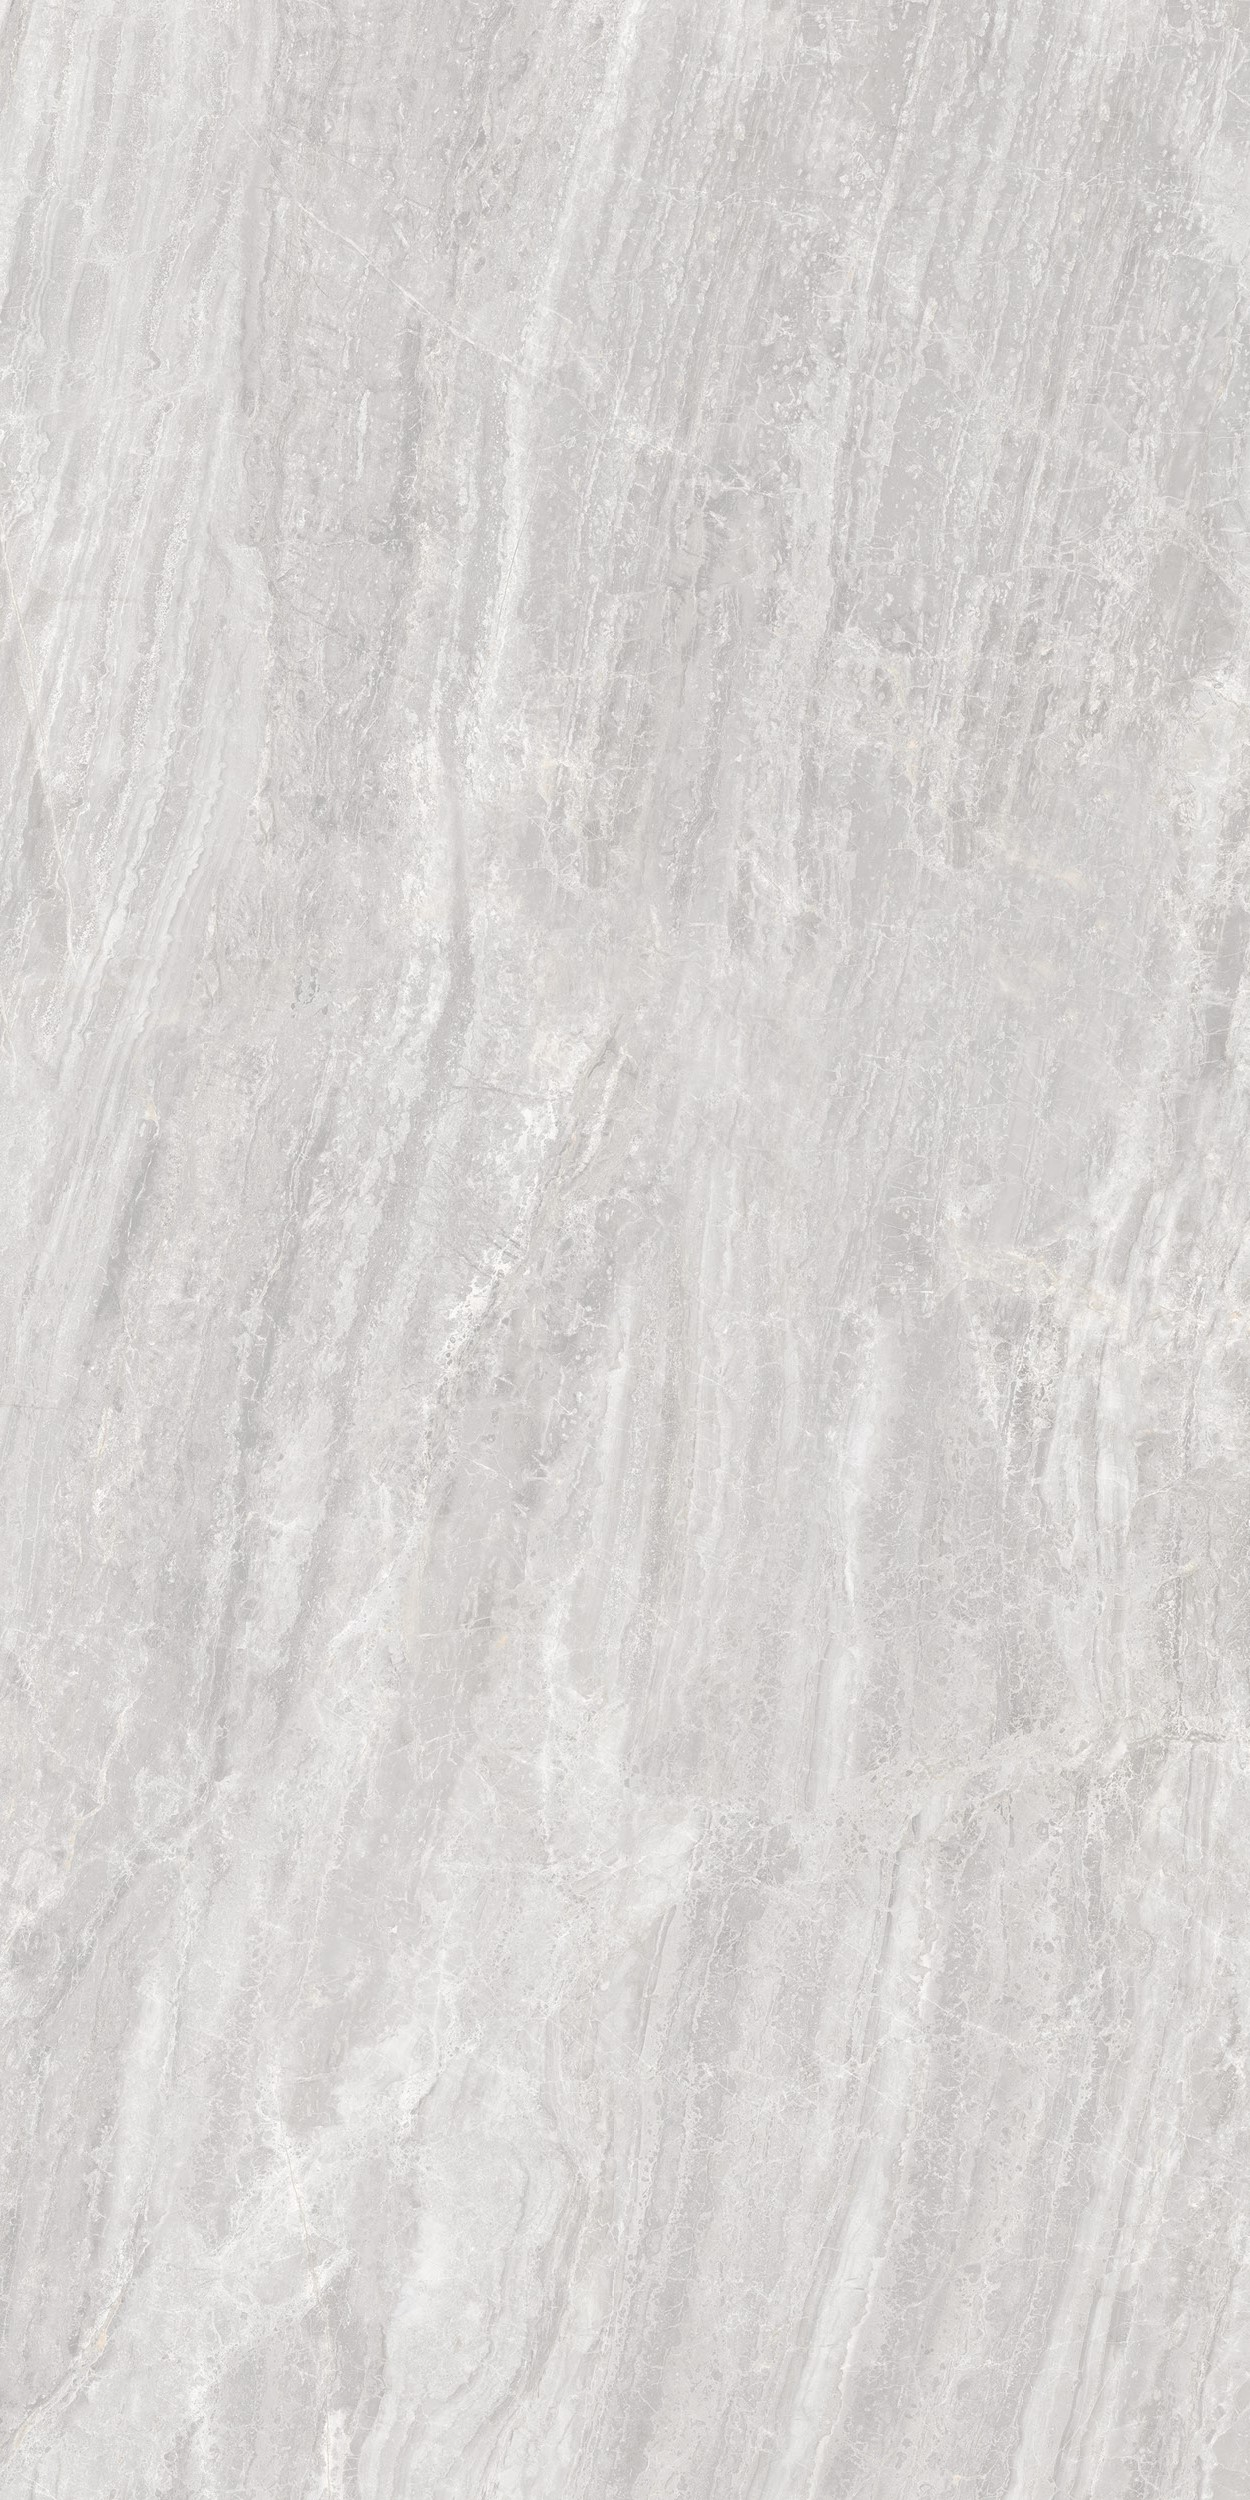 32 X 72 Cosmic Grey High Polished Rectified Porcelain Tile (SPECIAL ORDER ONLY)